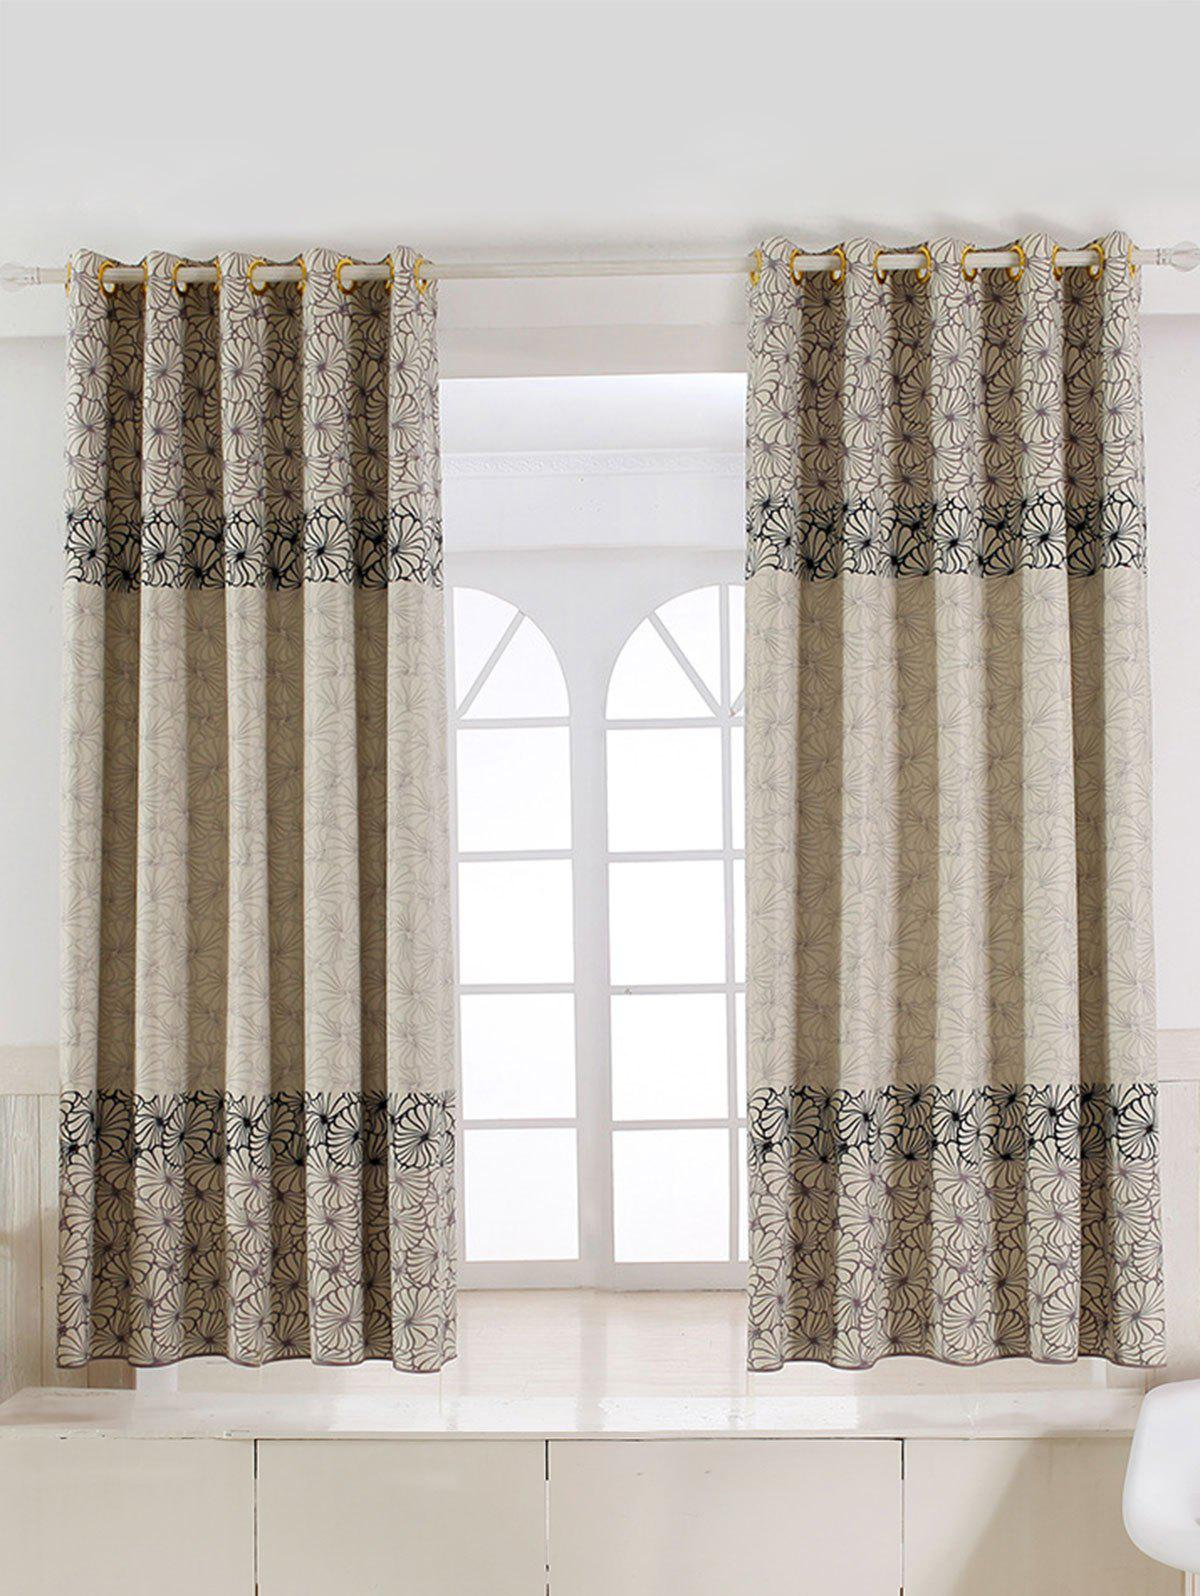 Floral Embroidery Fabric Grommet Top Blackout CurtainHOME<br><br>Size: 100*200CM; Color: CANDY BEIGE; Applicable Window Type: French Window; Function: Blackout; Installation Type: Ceiling Installation; Location: Window; Material: Polyester / Cotton; Opening and Closing Method: Left and Right Biparting Open; Pattern Type: Floral; Processing: Punching; Processing Accessories Cost: Excluded; Style: European and American Style; Type: Curtain; Use: Cafe,Home,Hospital,Hotel,Office; Weight: 0.4800kg; Package Contents: 1 x Curtain;